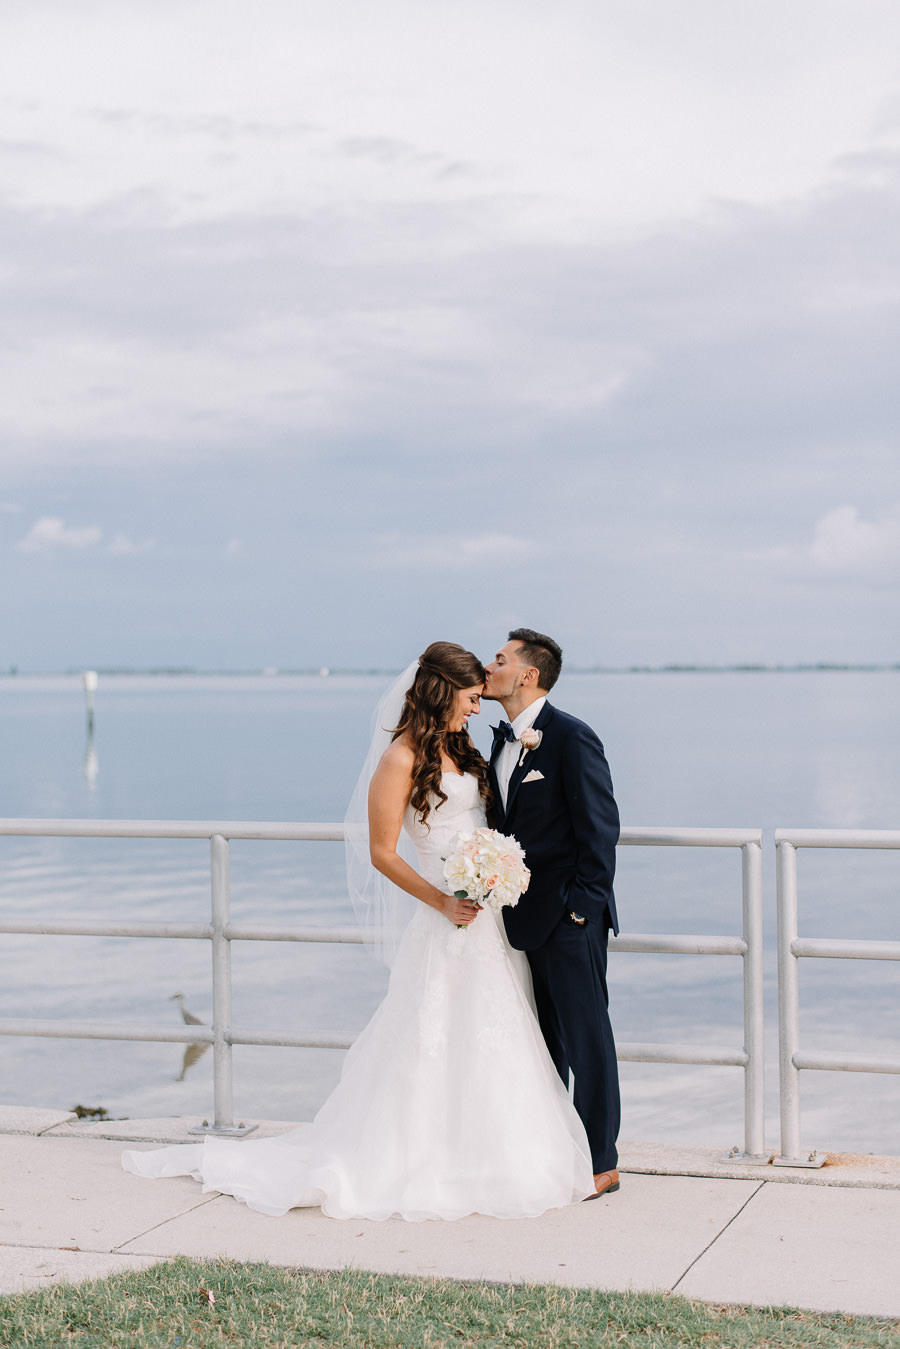 Outdoor Waterfront Wedding Couple Portrait with Watters Sweetheart Dress, Blush Rose Bouquet with Greenery, and Navy Suit at Tampa Bay Wedding Venue Safety Harbor Resort and Spa